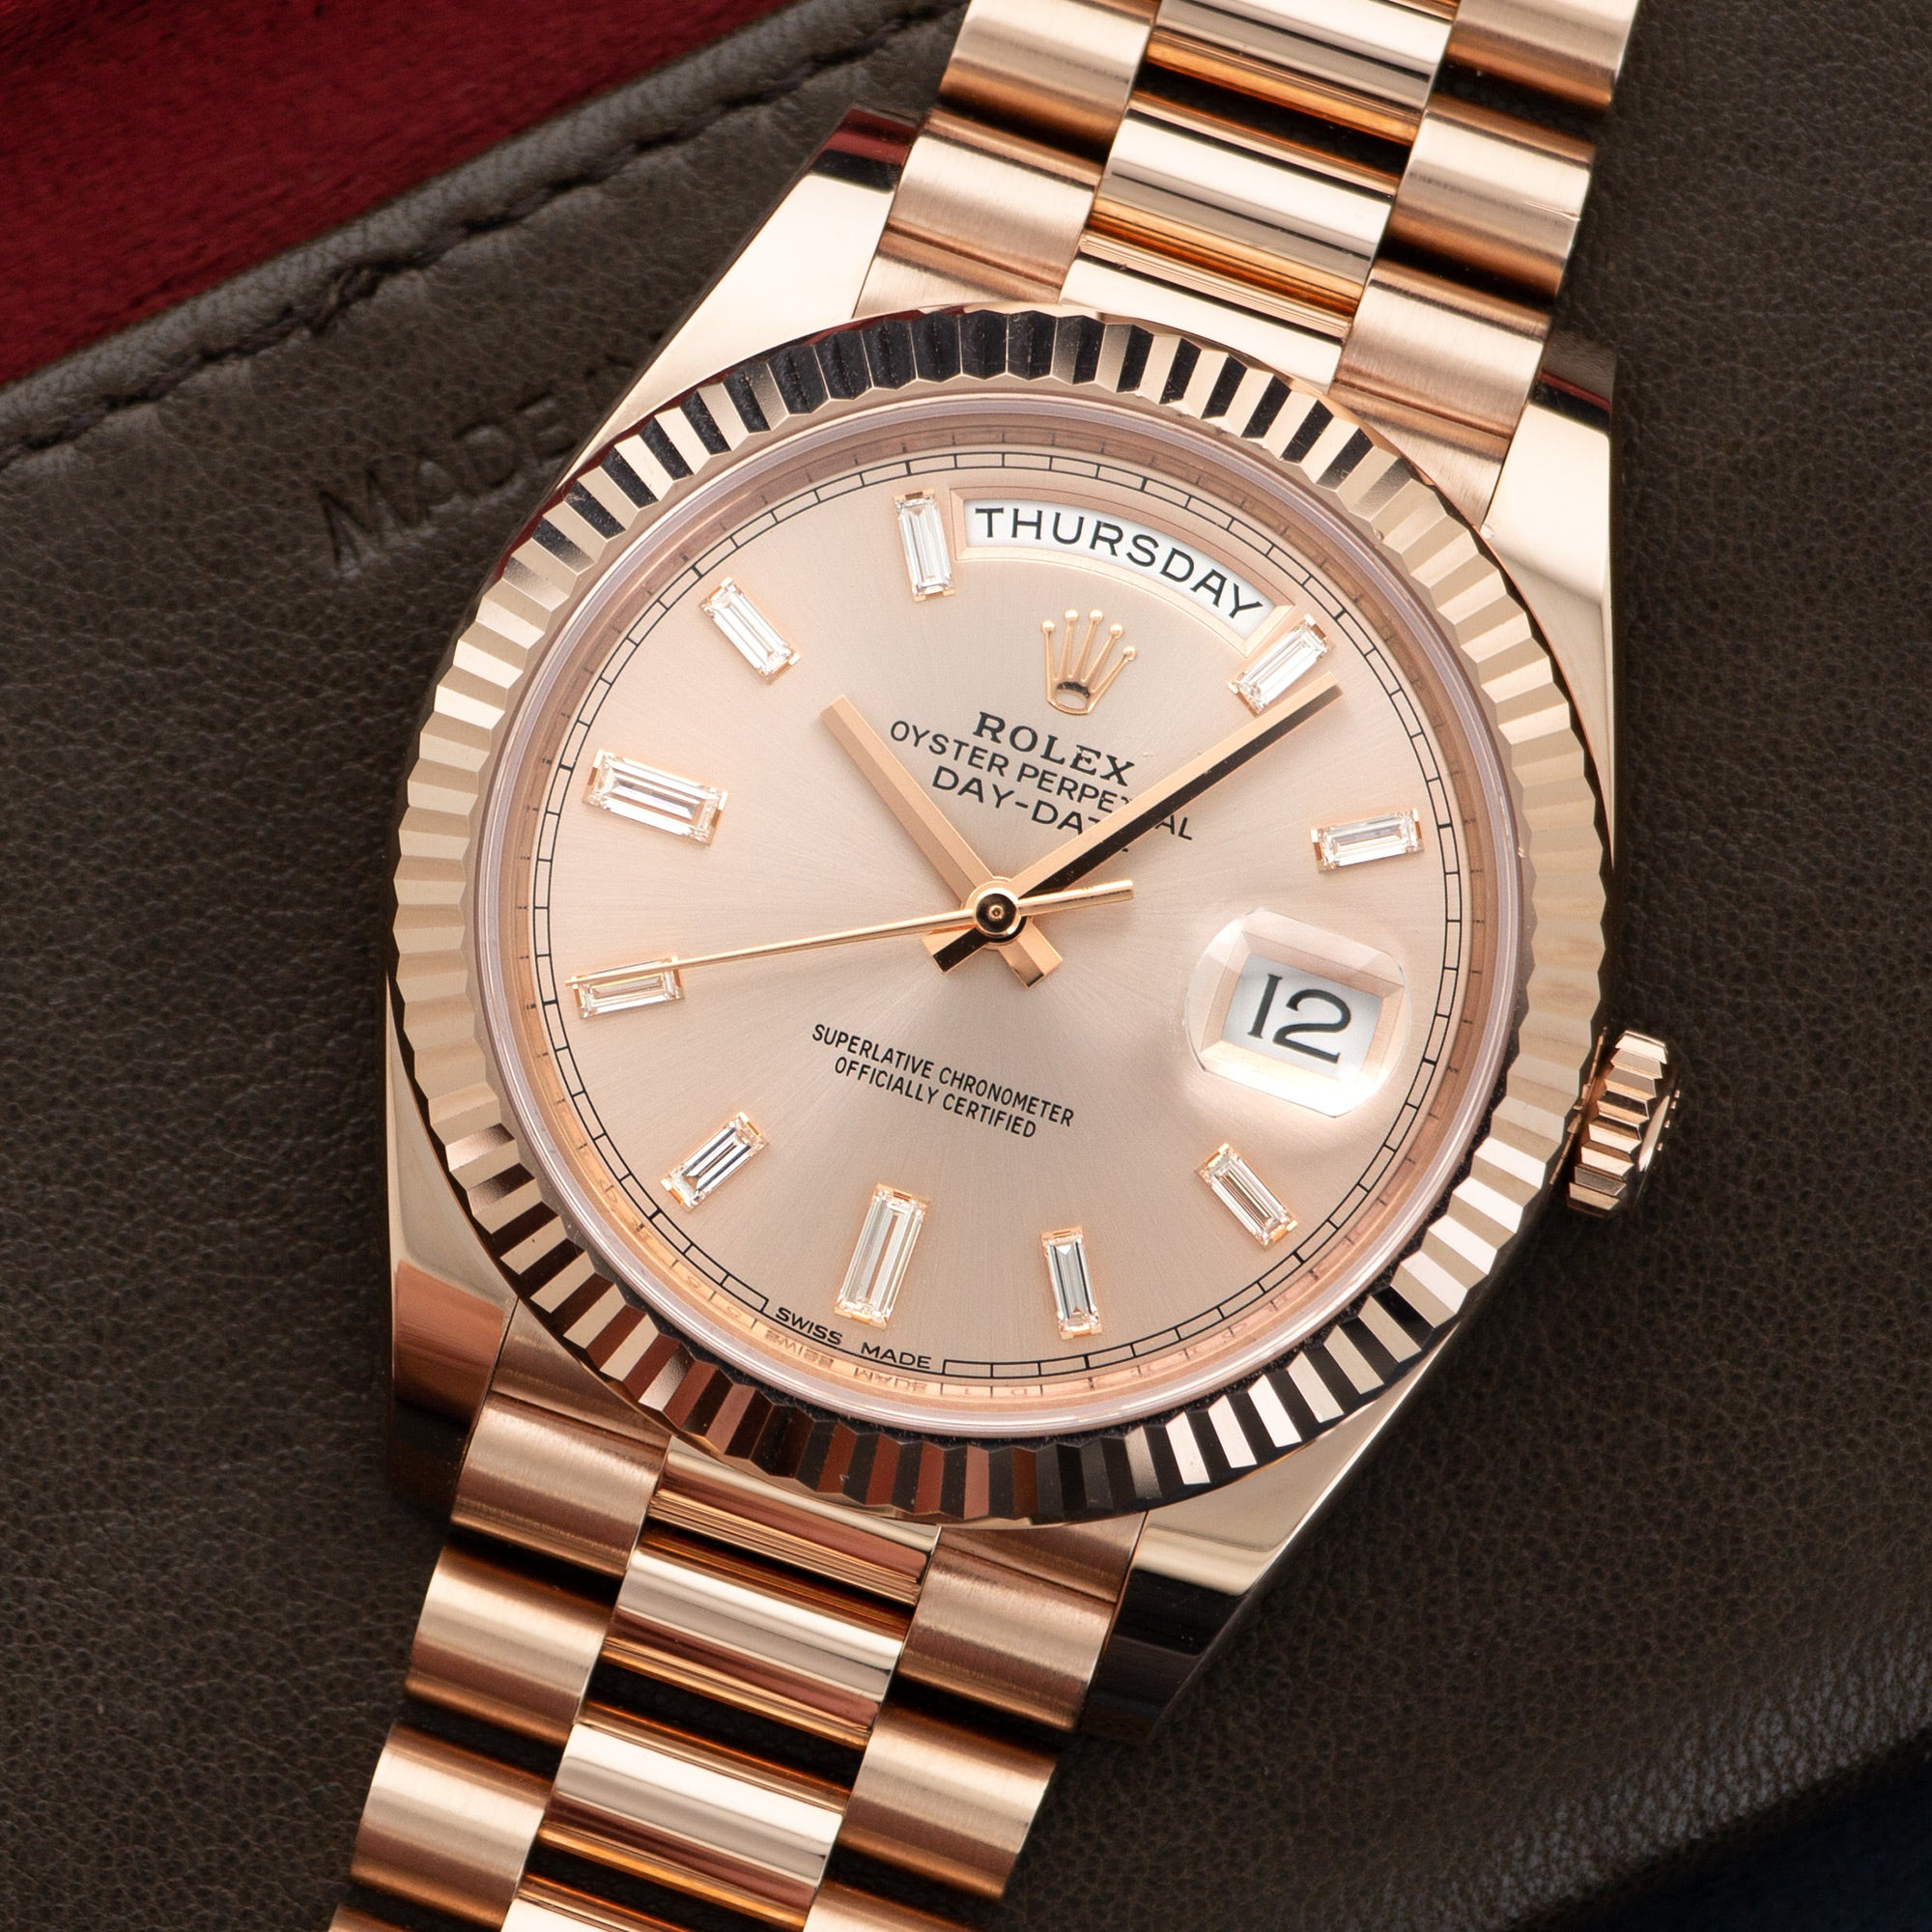 Rolex Day-Date 228235 18k RG  Very Good Unisex 18k RG Rose Gold Baguette  Markers 40mm Automatic Current Rose Gold Bracelet Leather Travel Case